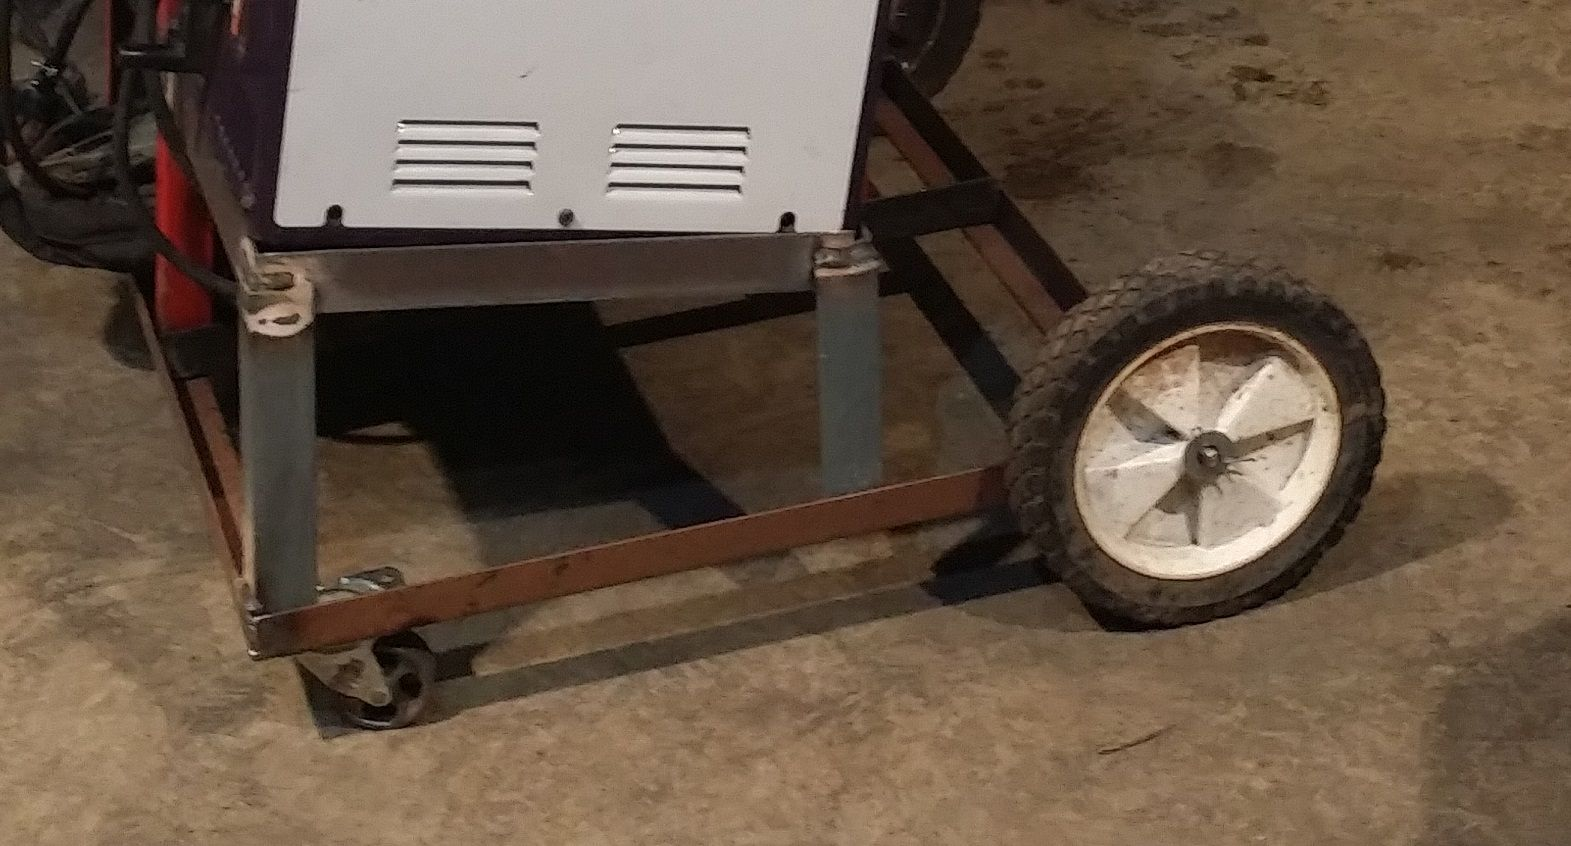 9) I got the Rear wheels, from an old air compressor I